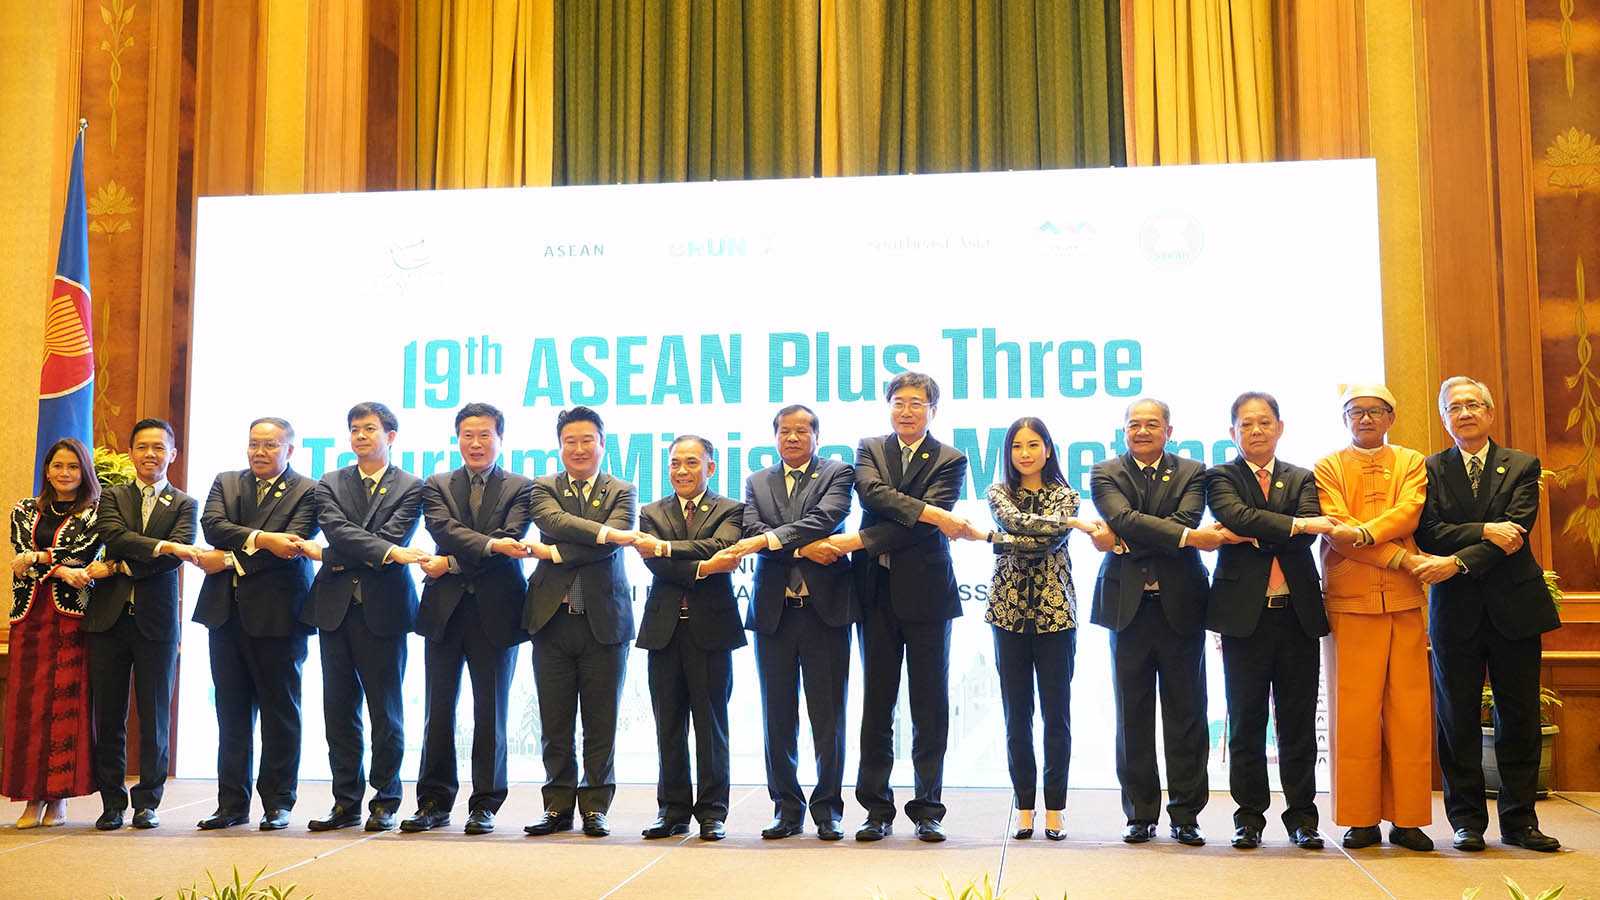 Union Minister U Ohn Maung and ASEAN ministers pose for a documentary photo at the 19th ASEAN Plus Three Tourism Ministers Meeting in Bandar Seri Begawan, Brunei Darussalam on 14 January. Photo: MNA